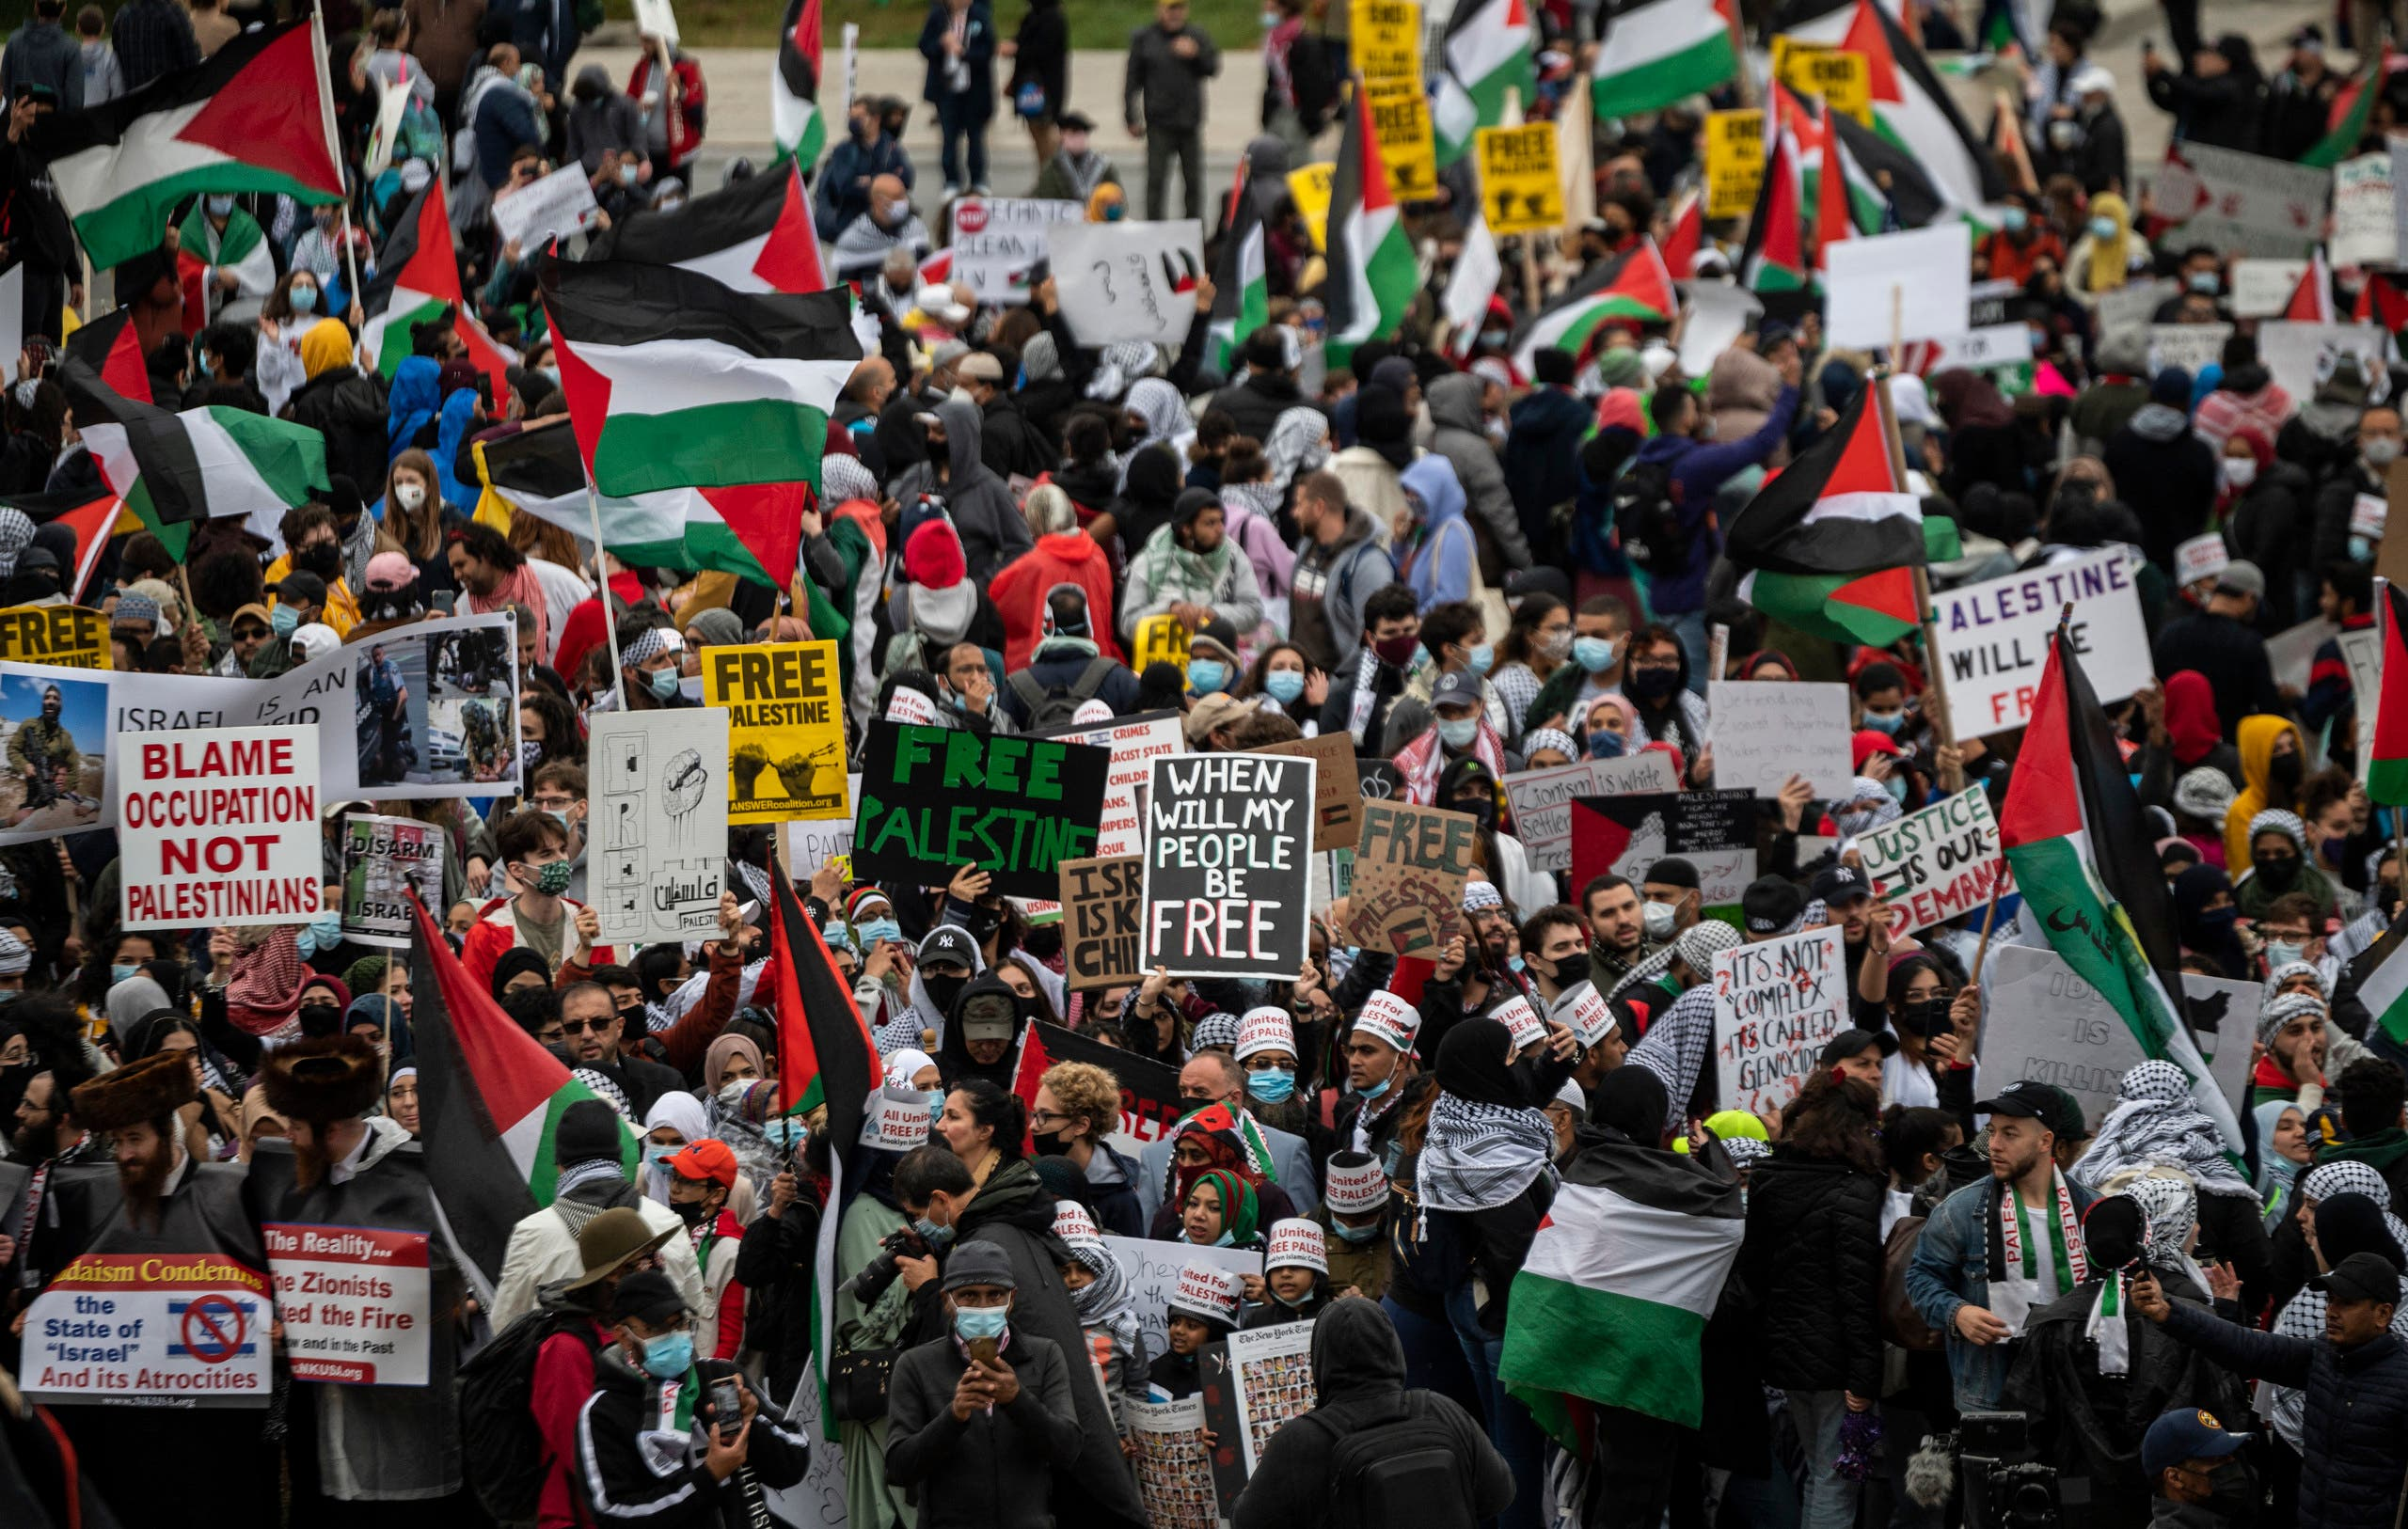 Supporters of Palestine hold a rally at the Lincoln Memorial in Washington, DC on May 29, 2021. (Reuters)